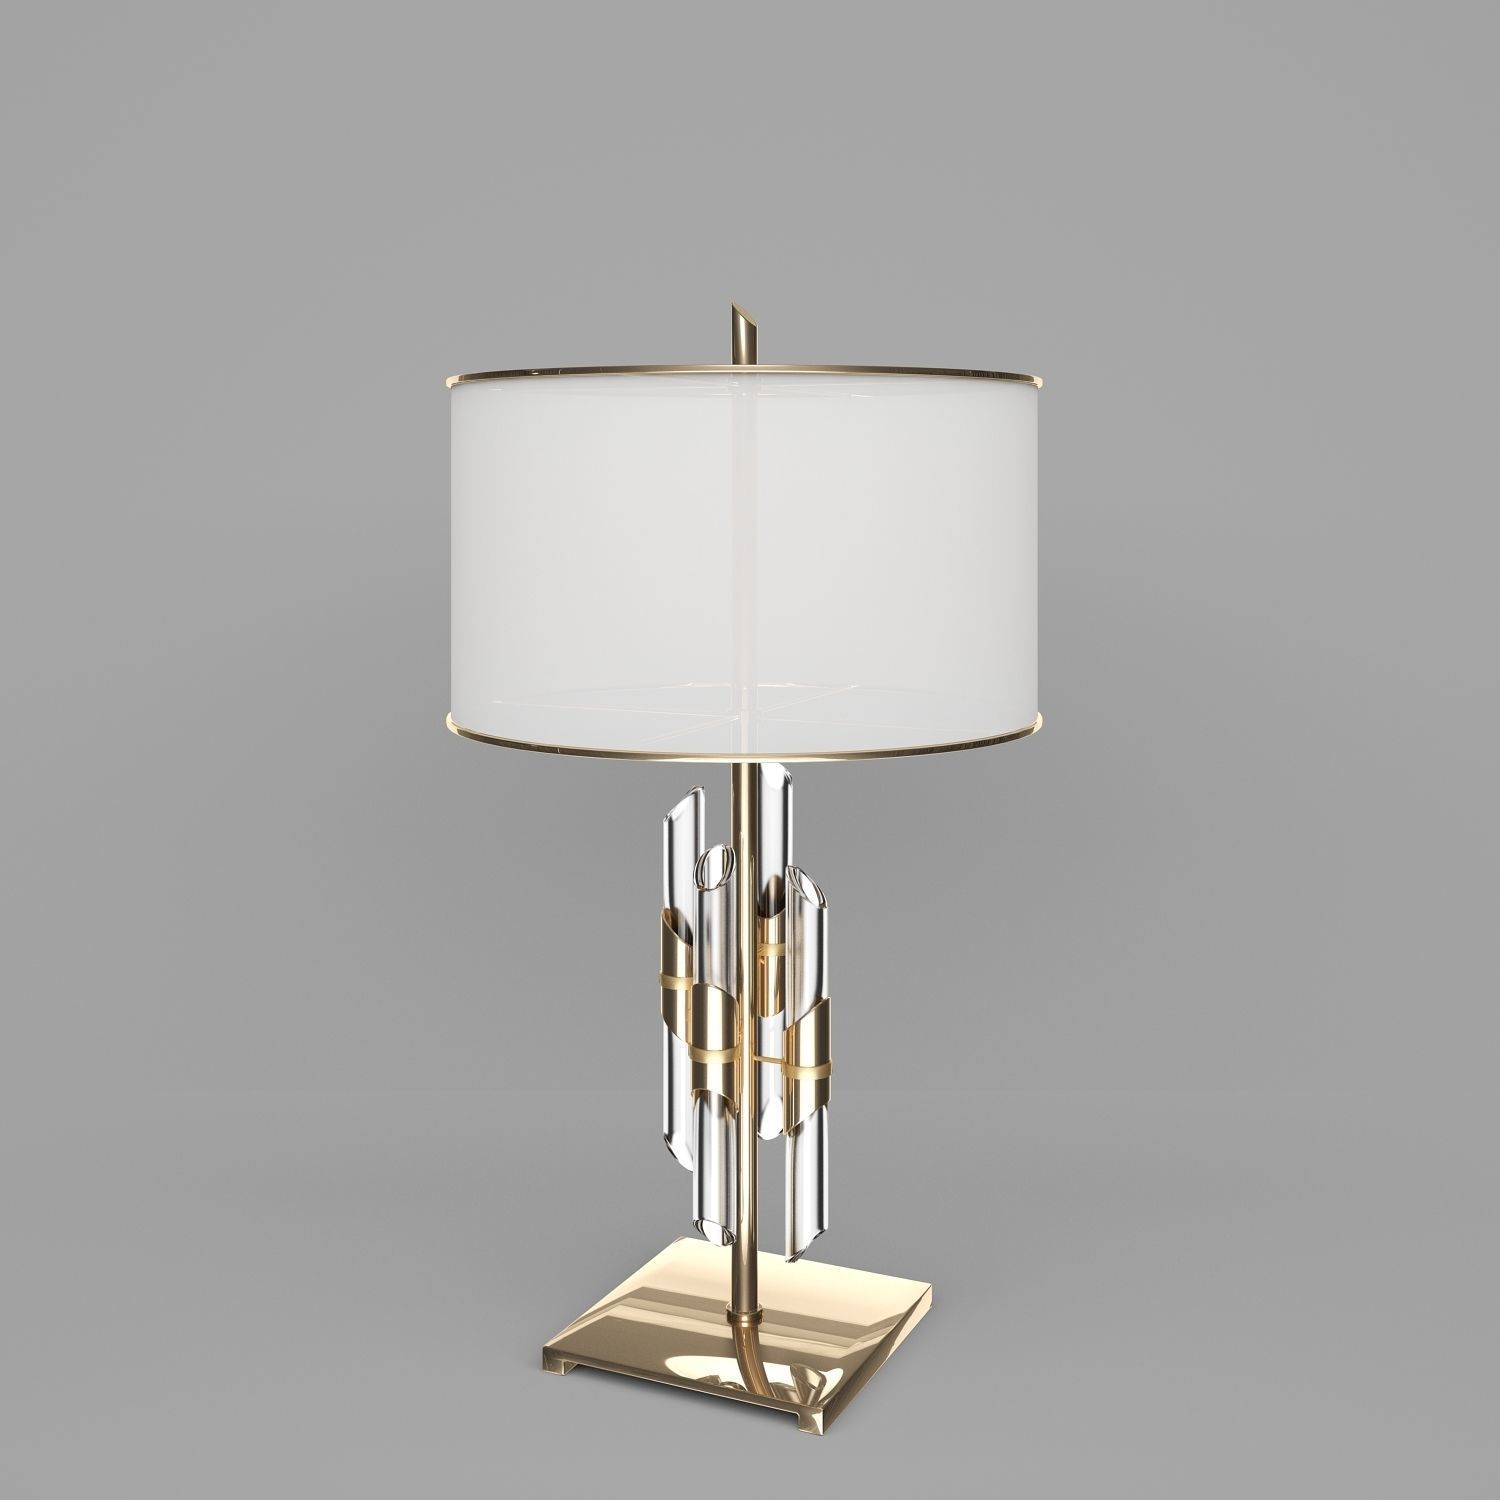 Brass And Crystal Rod Table Lamp 3d Model In 2020 Table Lamp Lamp Modern Kitchen Interiors